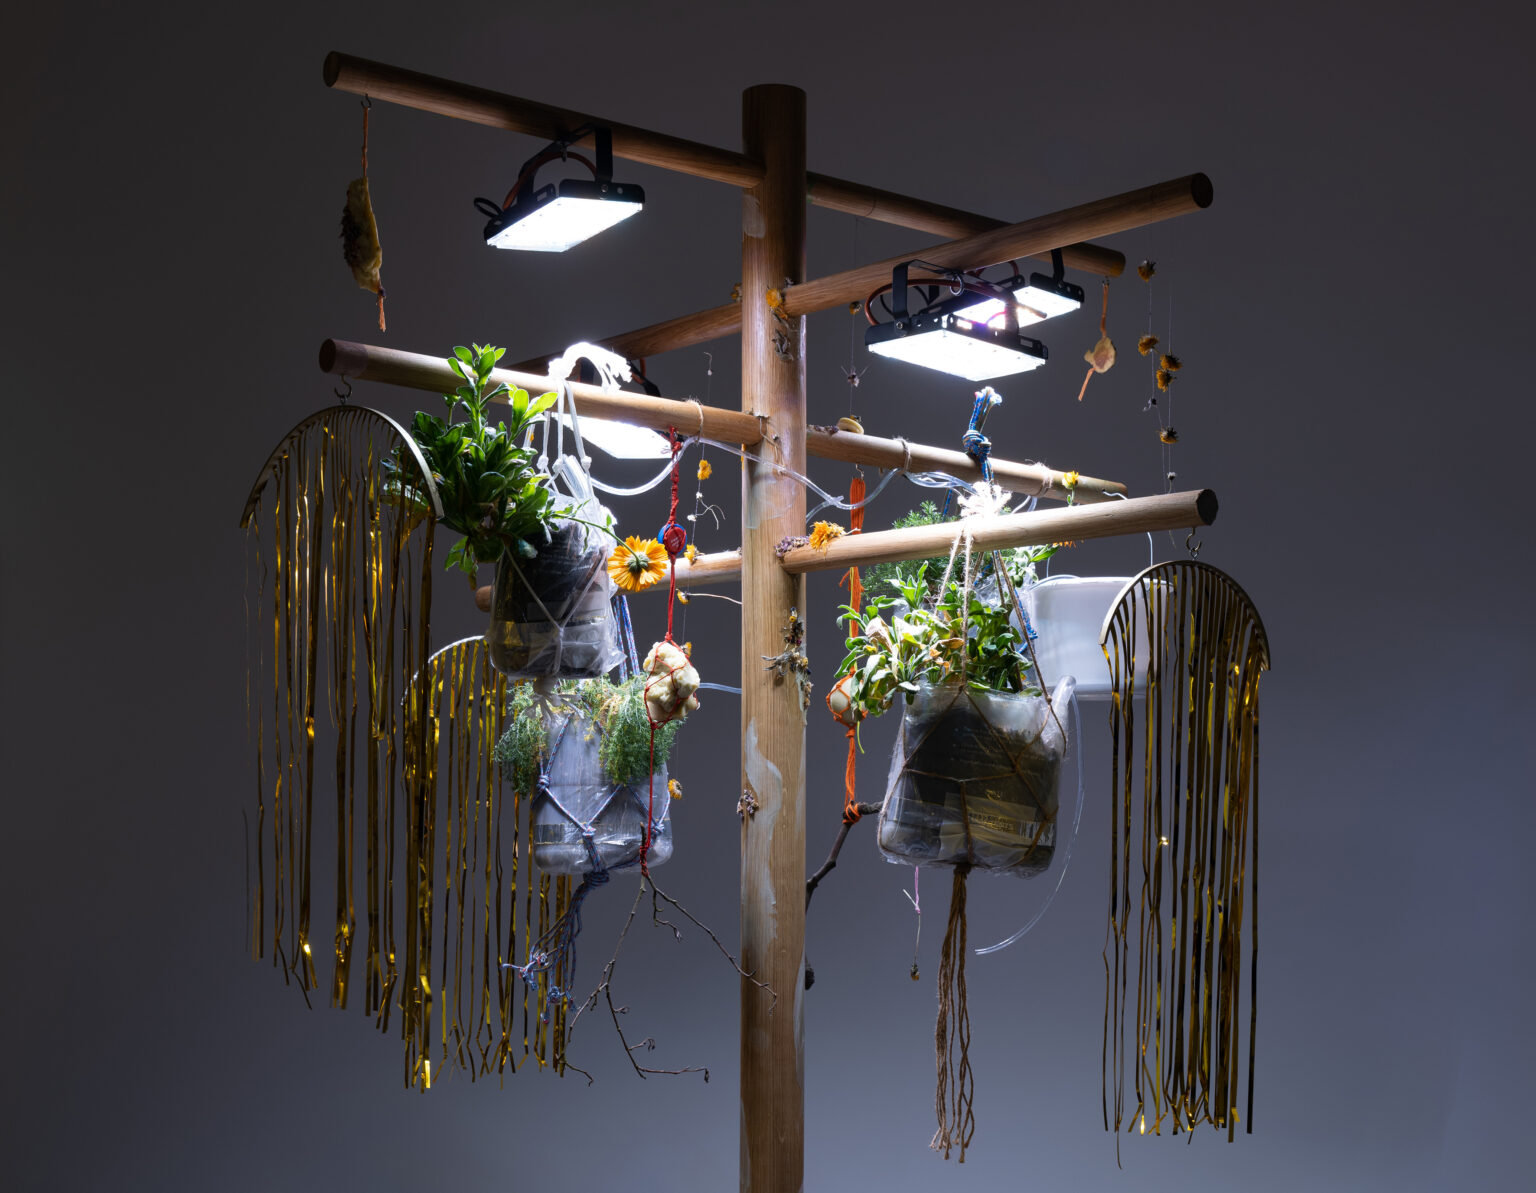 A sculptural installation with plants hanging from a tree-like wooden frame, lit by grow lights and decorated with golden foil.